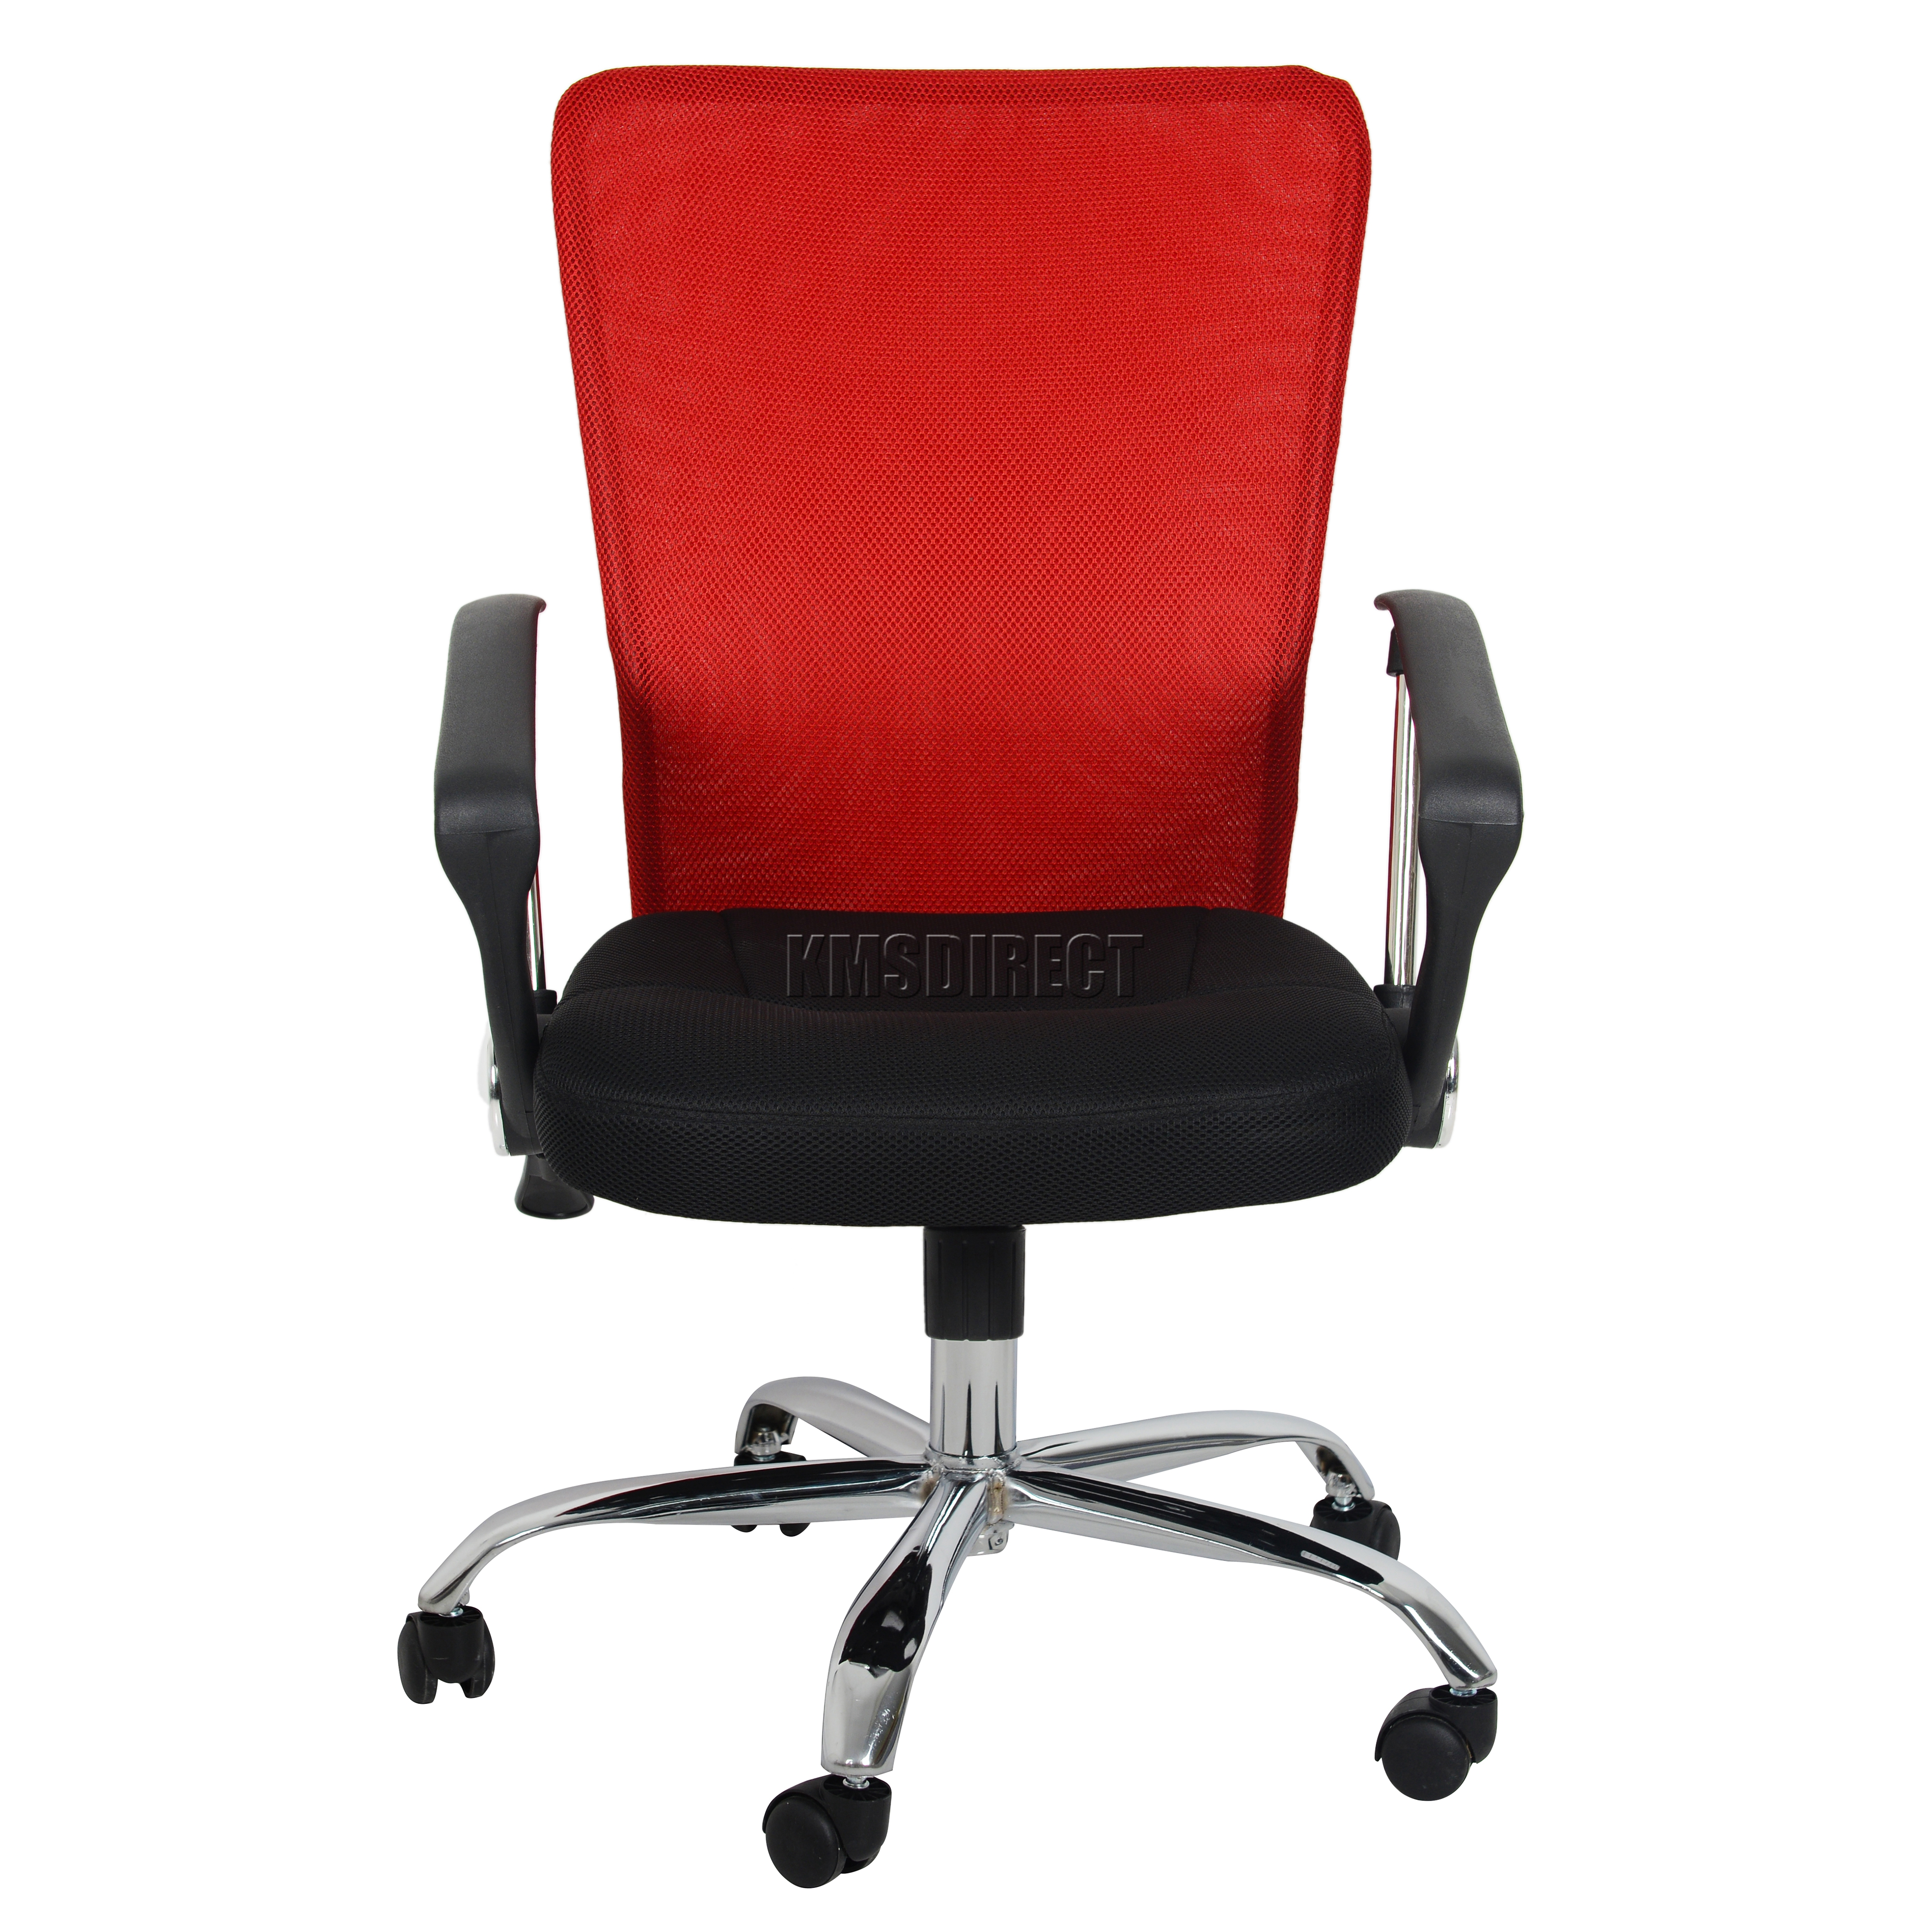 FoxHunter Computer Executive Office Desk Chair Mesh Fabric